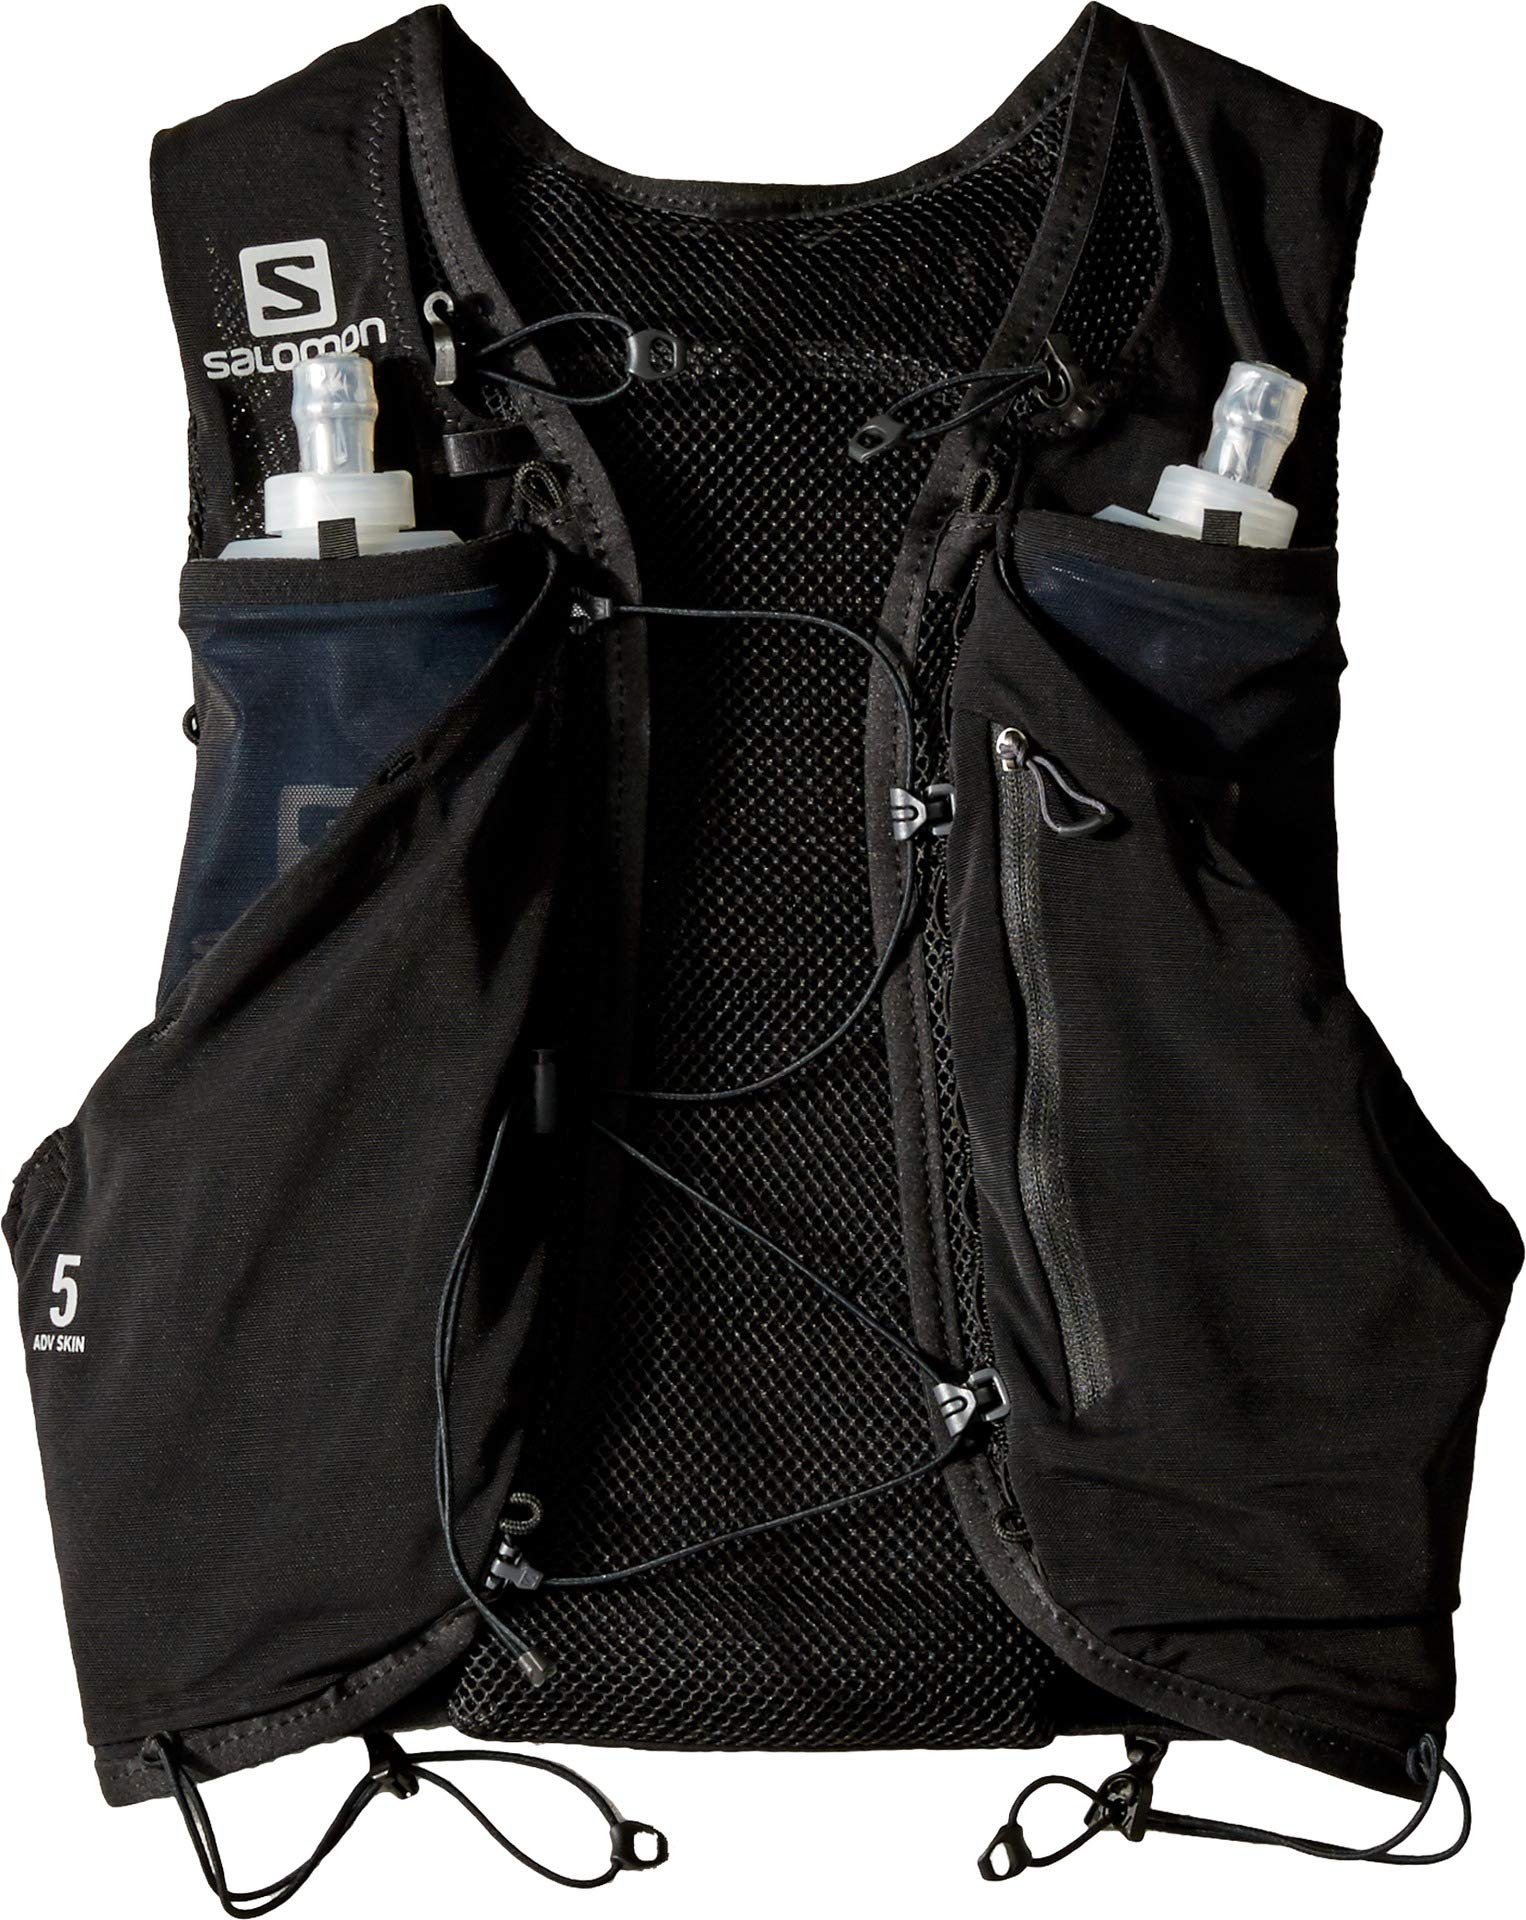 Salomon Unisex Adv Skin 5 Set Black X-Small by Salomon (Image #1)